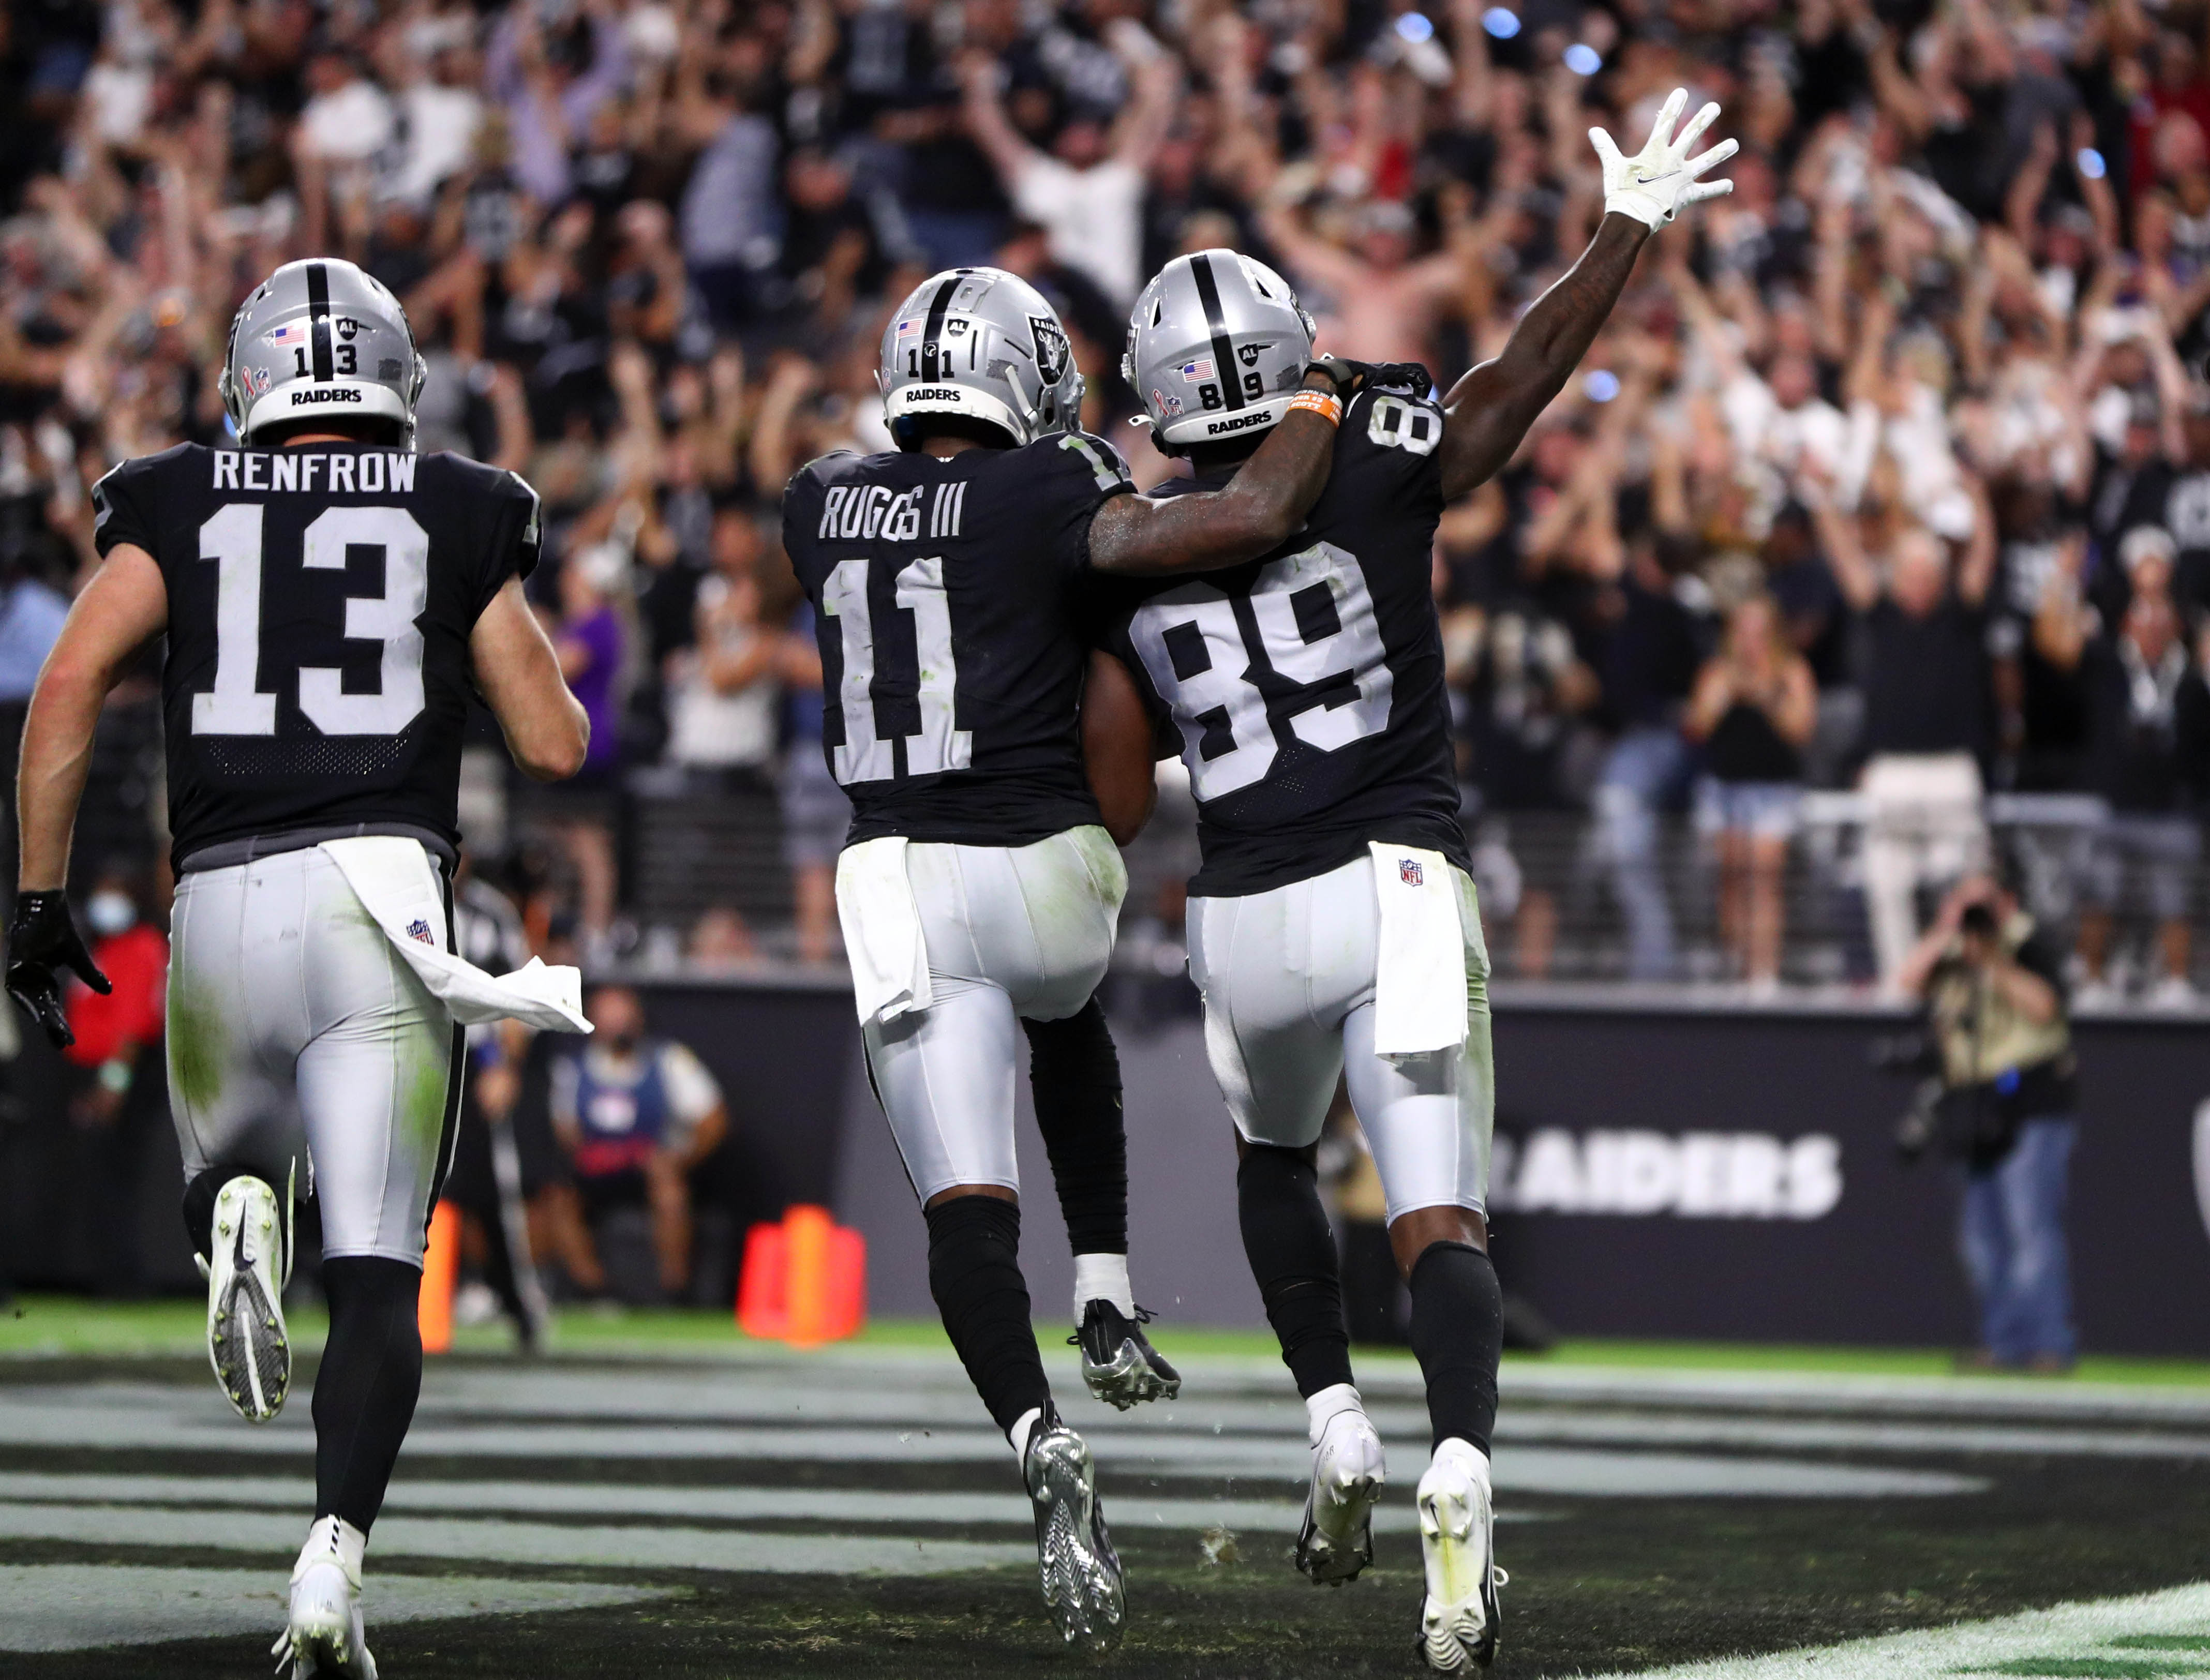 Las Vegas Raiders wide receiver Bryan Edwards (89) celebrates after running the ball into the endzone against the Baltimore Ravens during overtime at Allegiant Stadium.